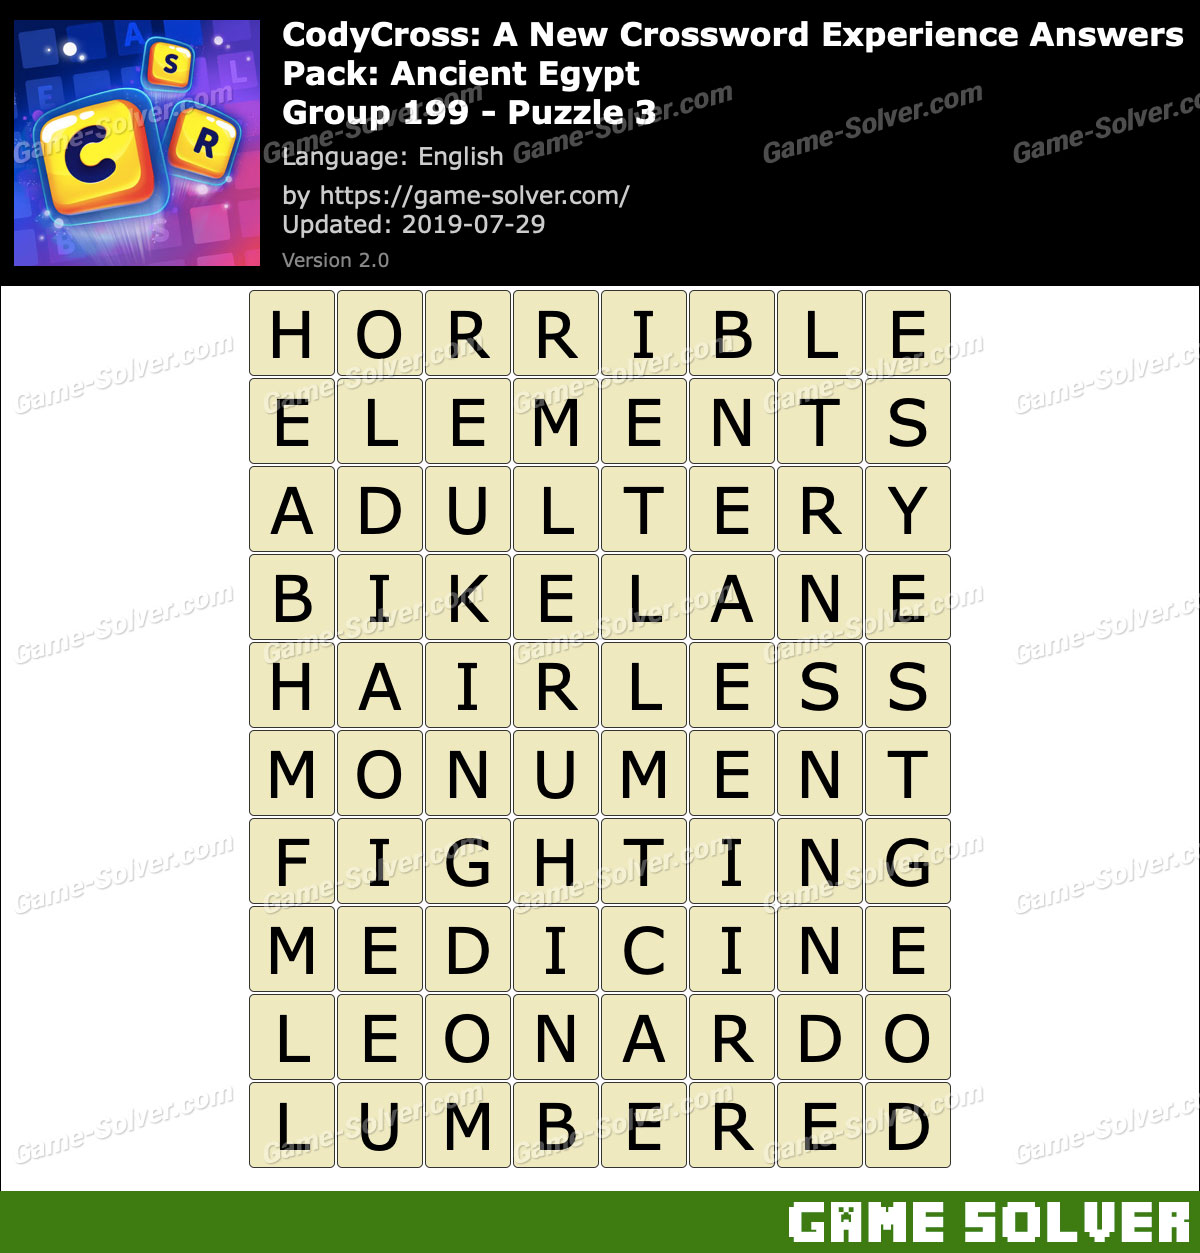 CodyCross Ancient Egypt Group 199-Puzzle 3 Answers